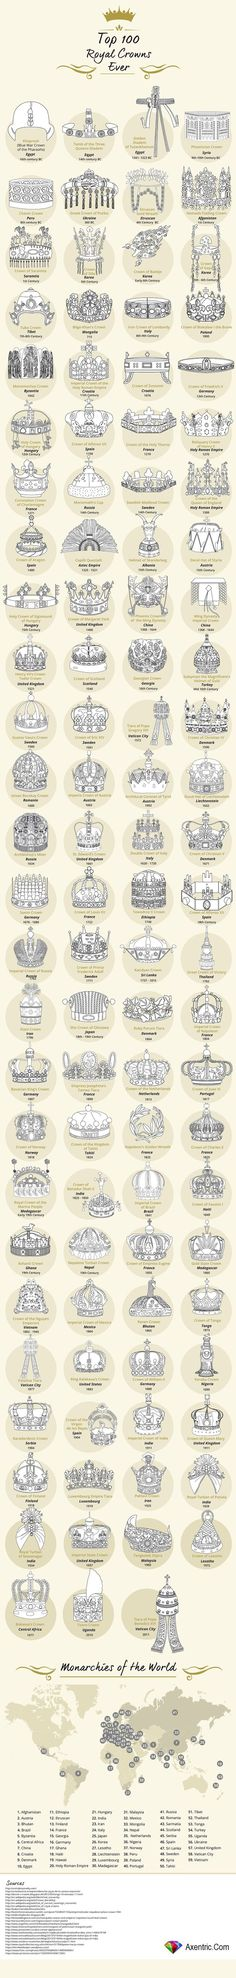 Top 100 Royal Crowns and Crown Jewels from the last 3500 years!